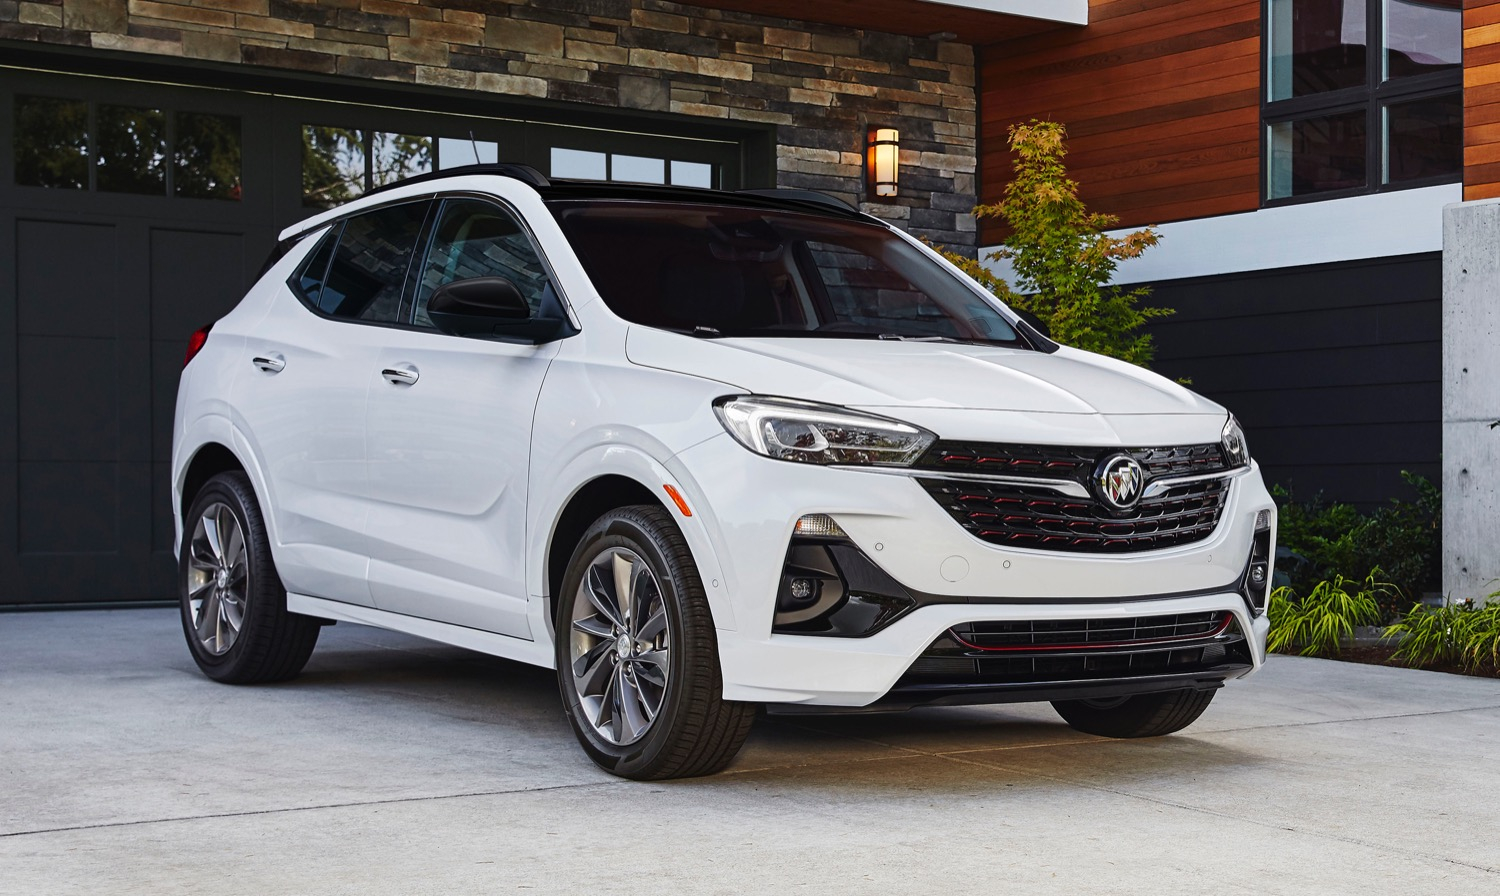 2020 Buick Encore Gx Fuel Economy Released | Gm Authority New 2022 Buick Encore Gx Length, Price, Gas Mileage